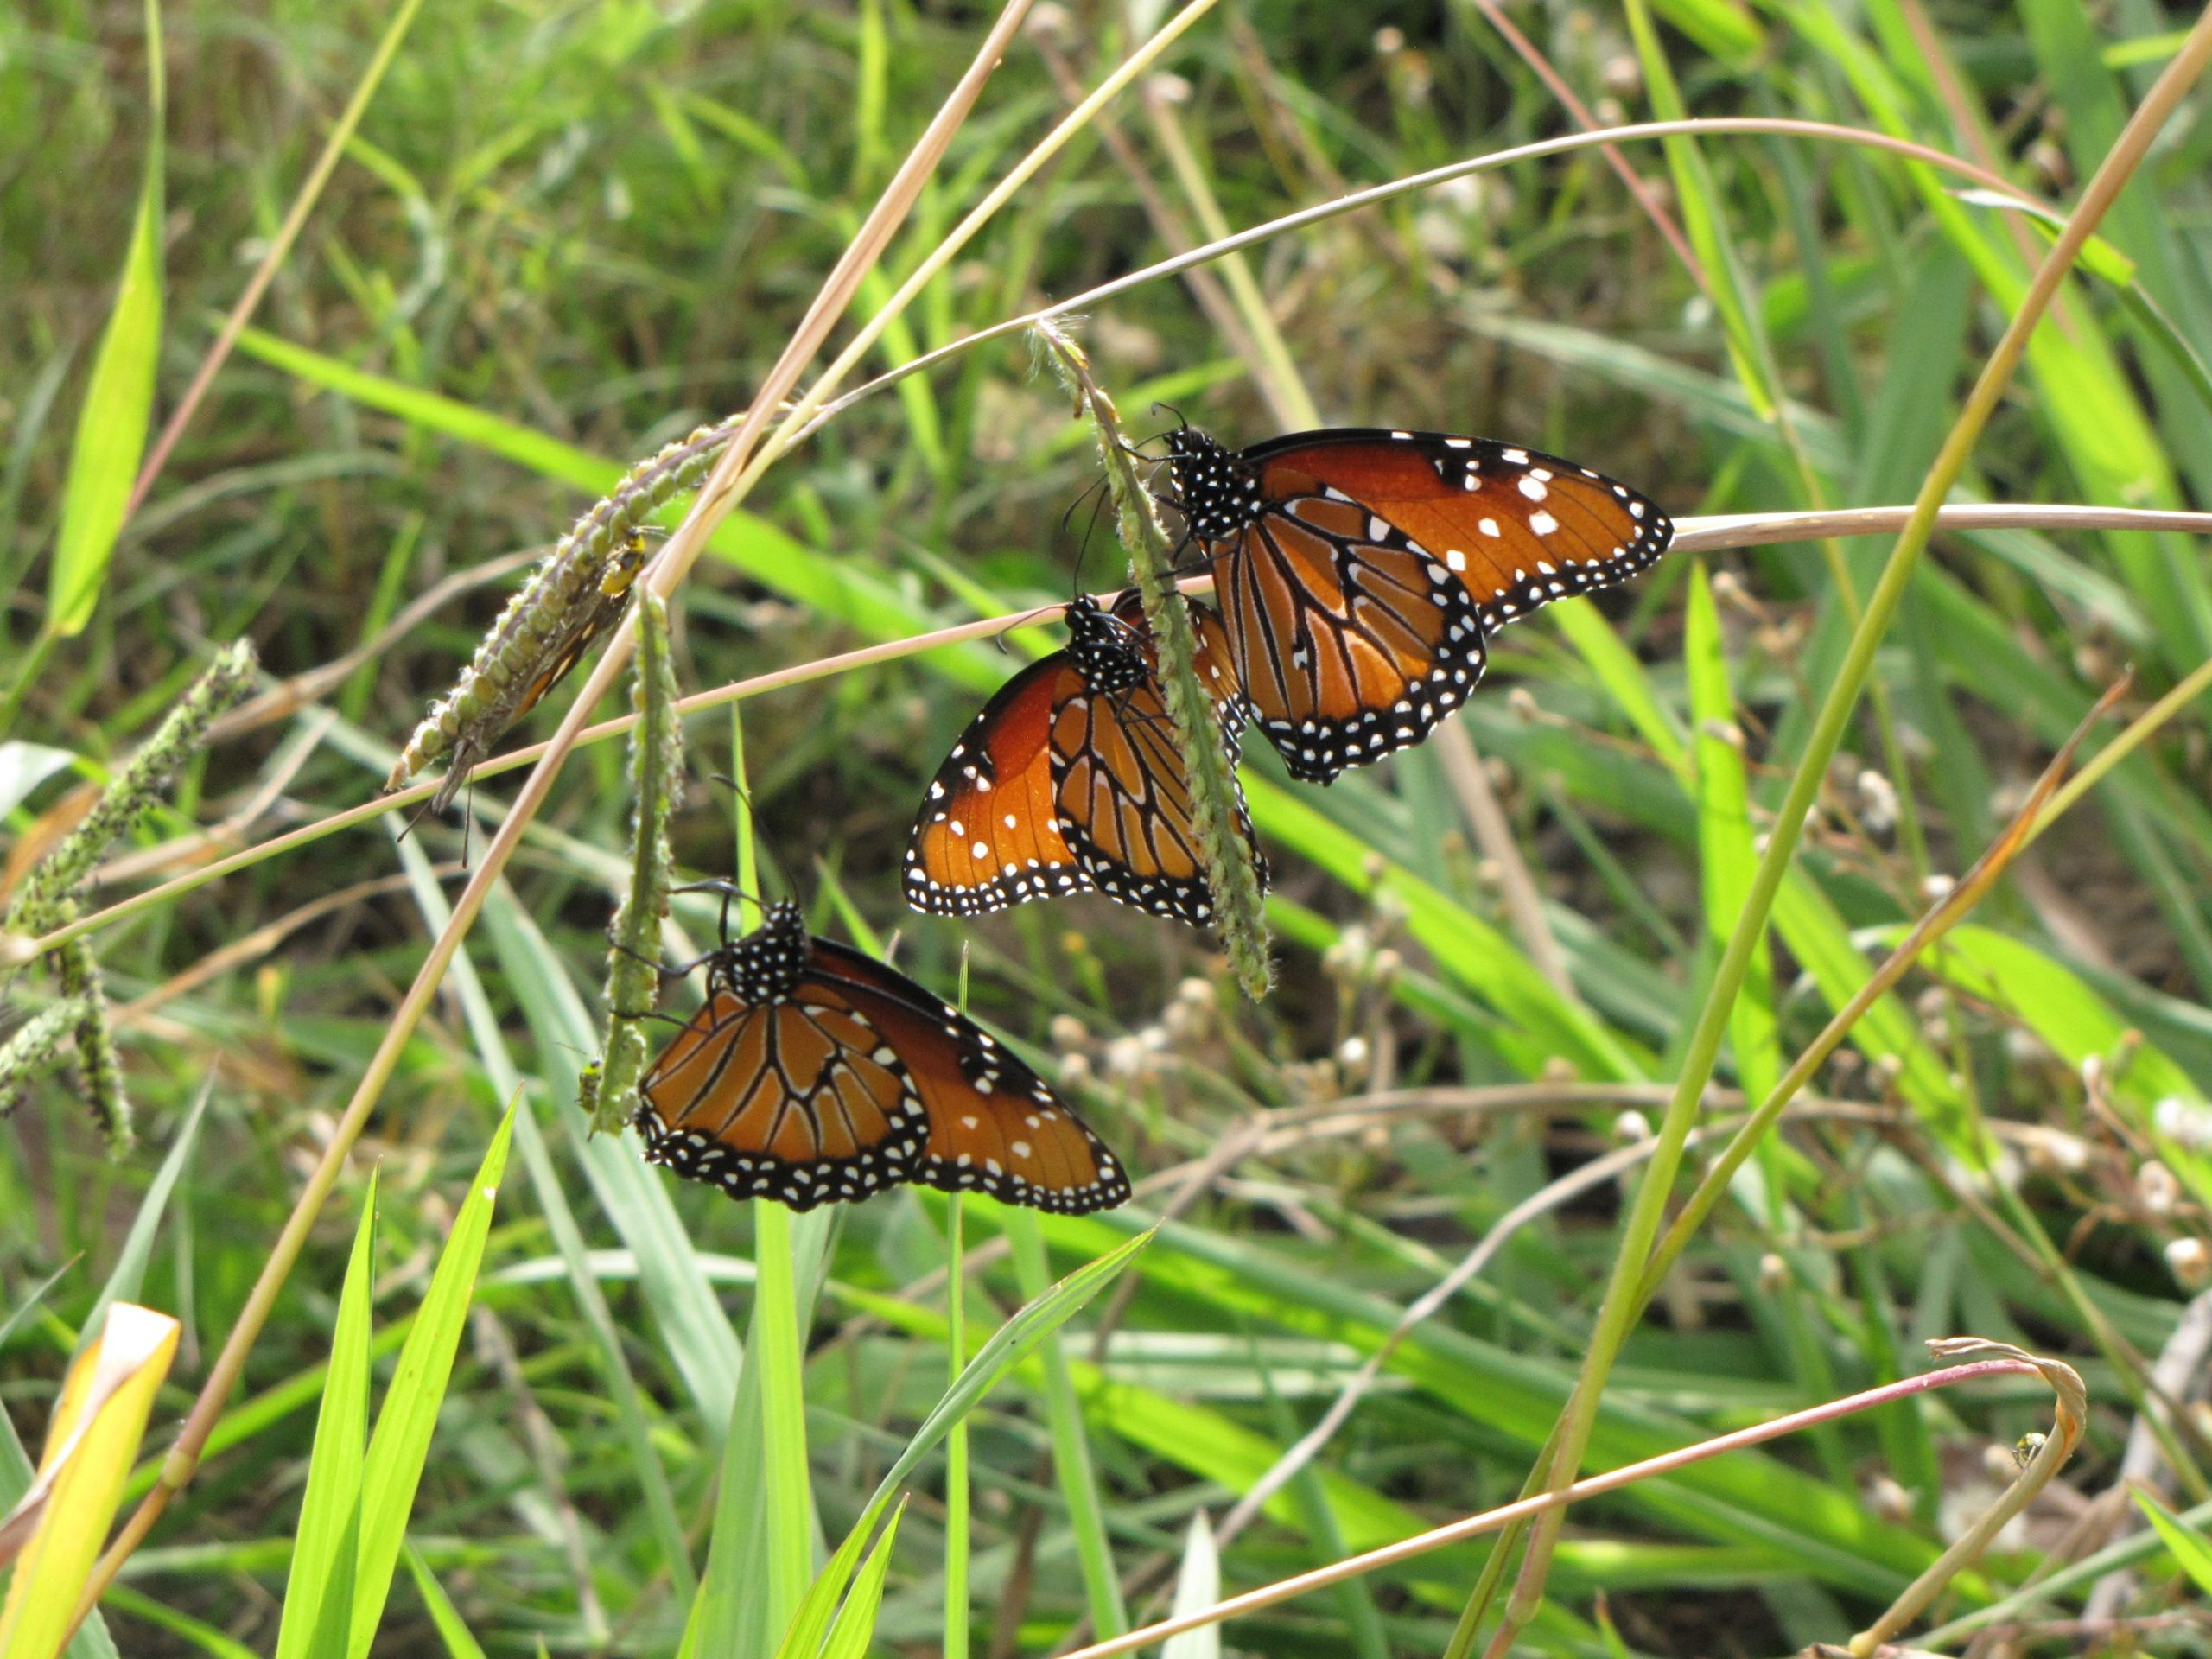 Three Queen butterflies